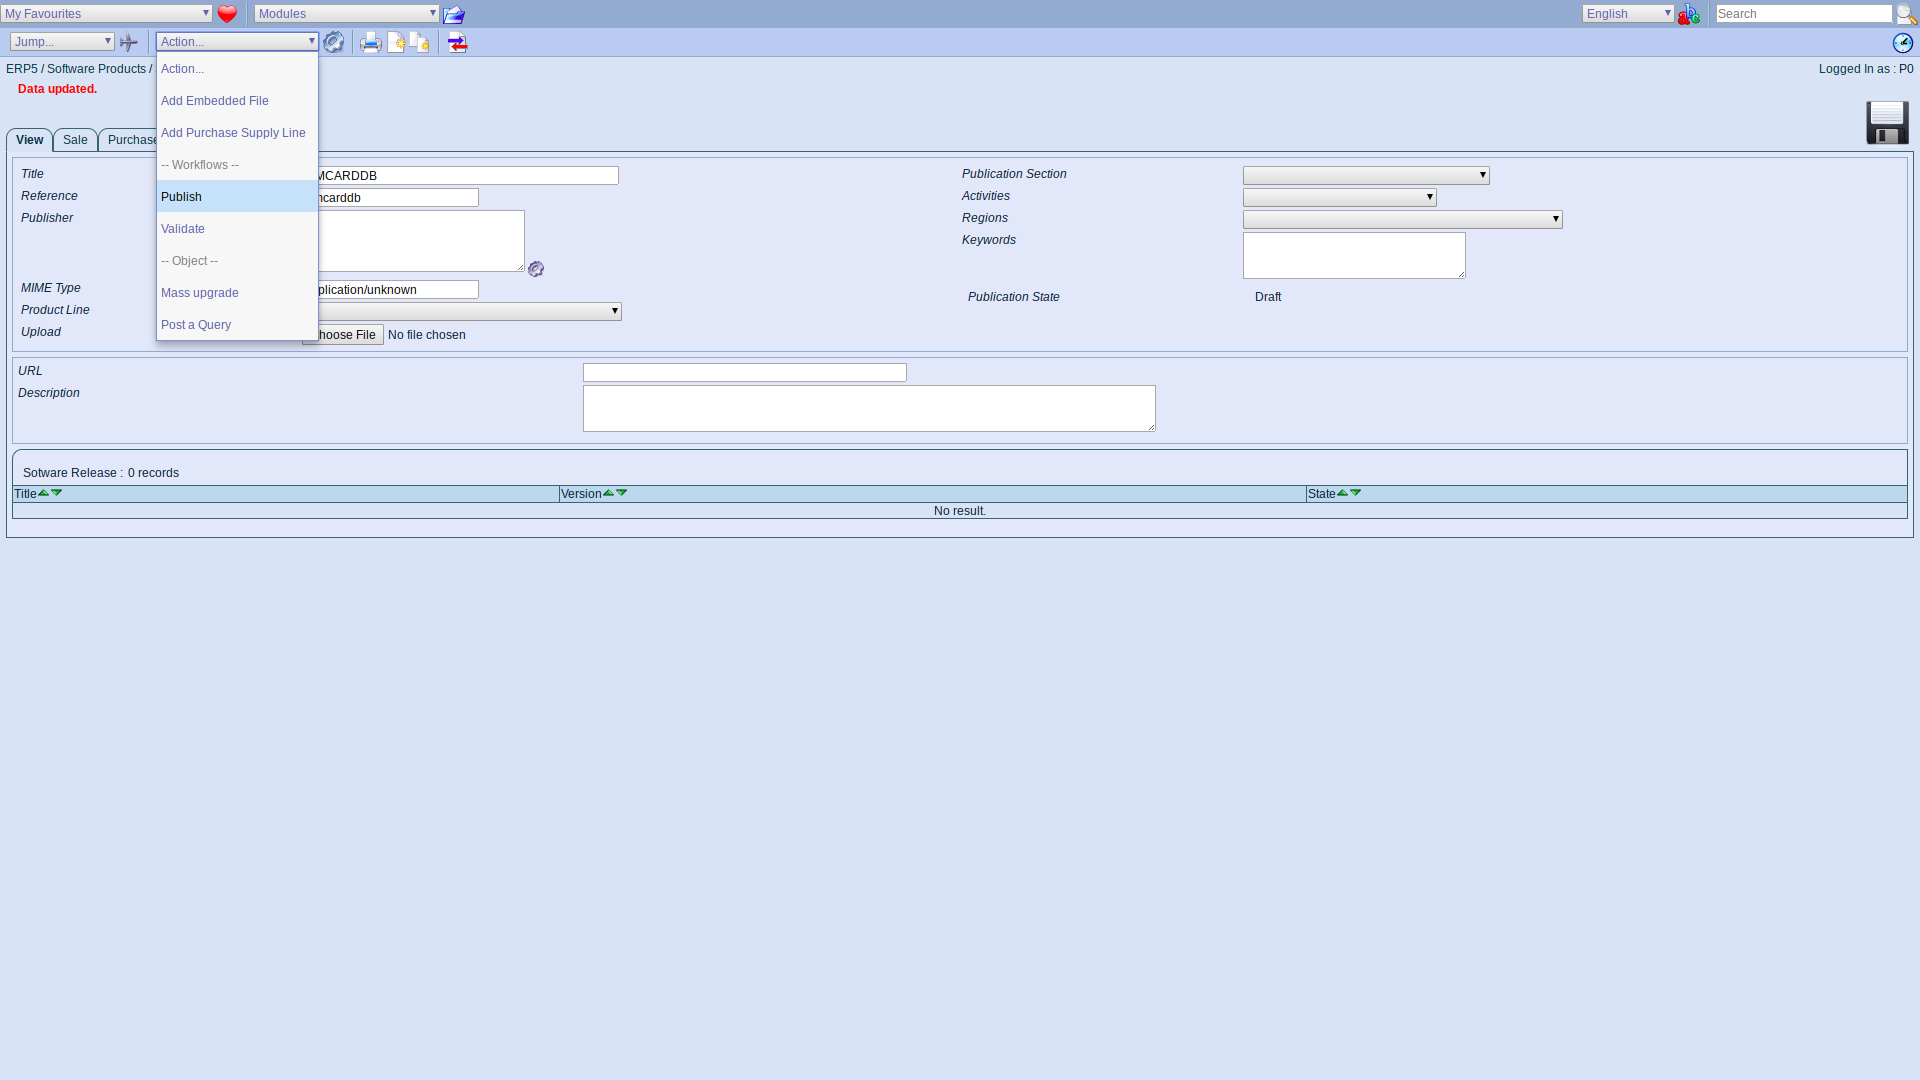 ERP5 Interface - Administrator Publish Software Product Webrunner